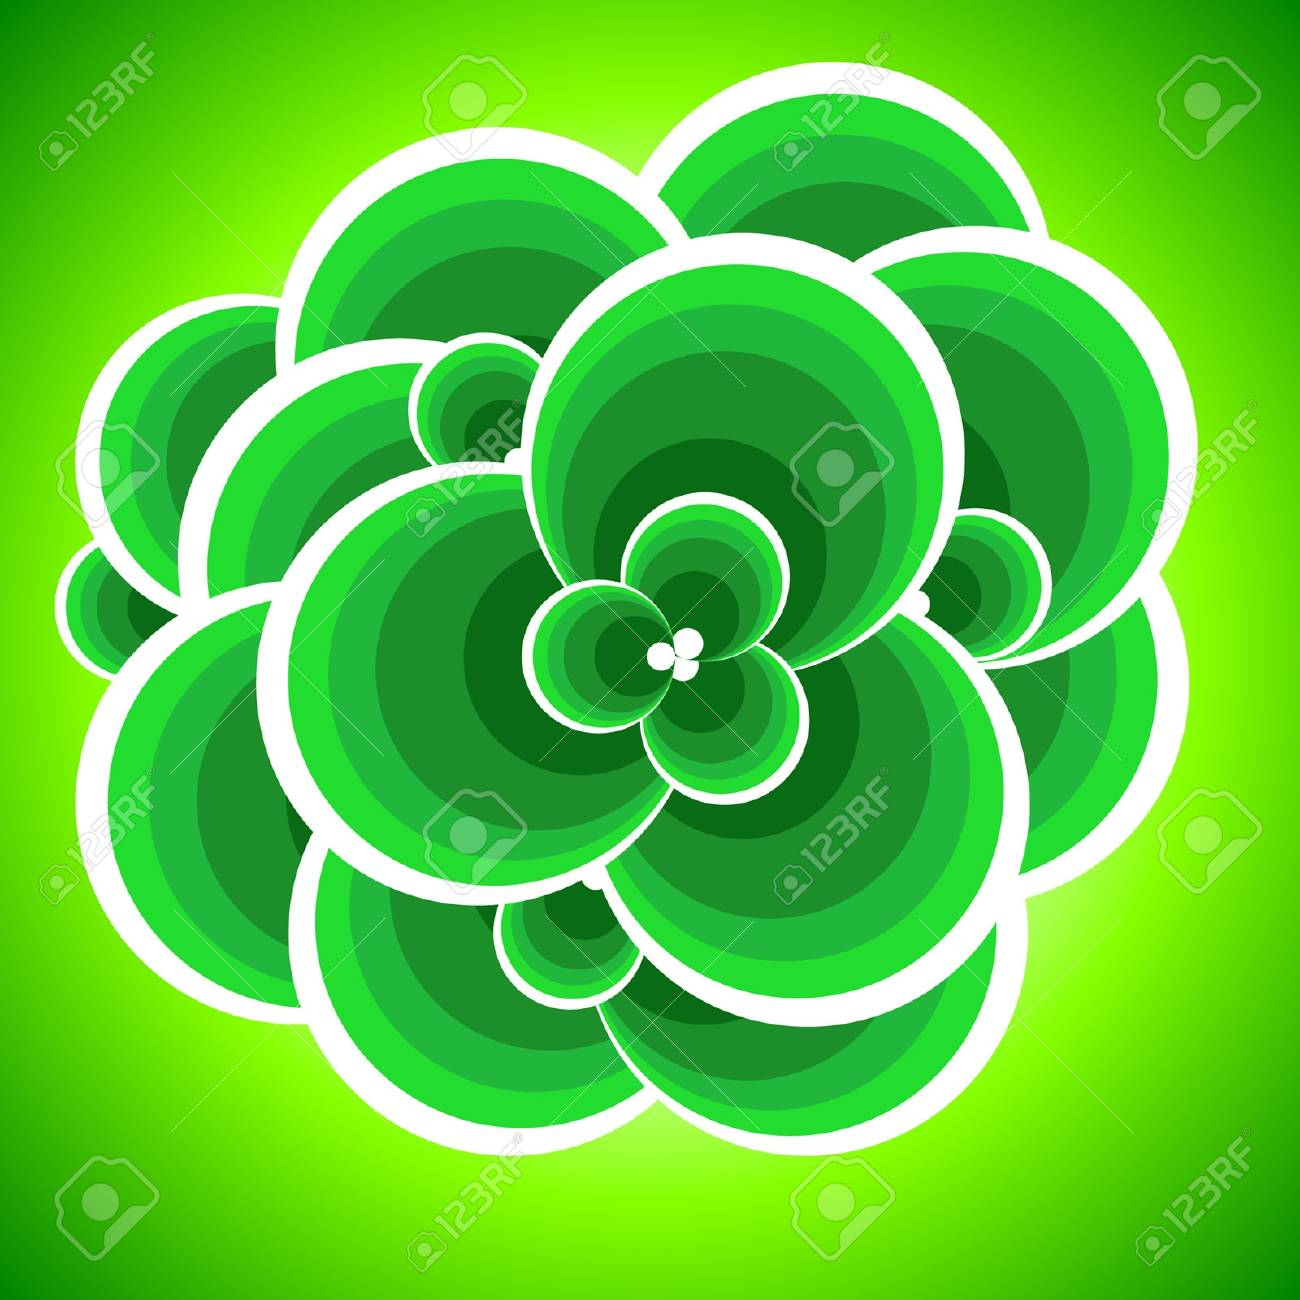 Abstract green foliage. Vector illustration. Stock Vector - 5372188